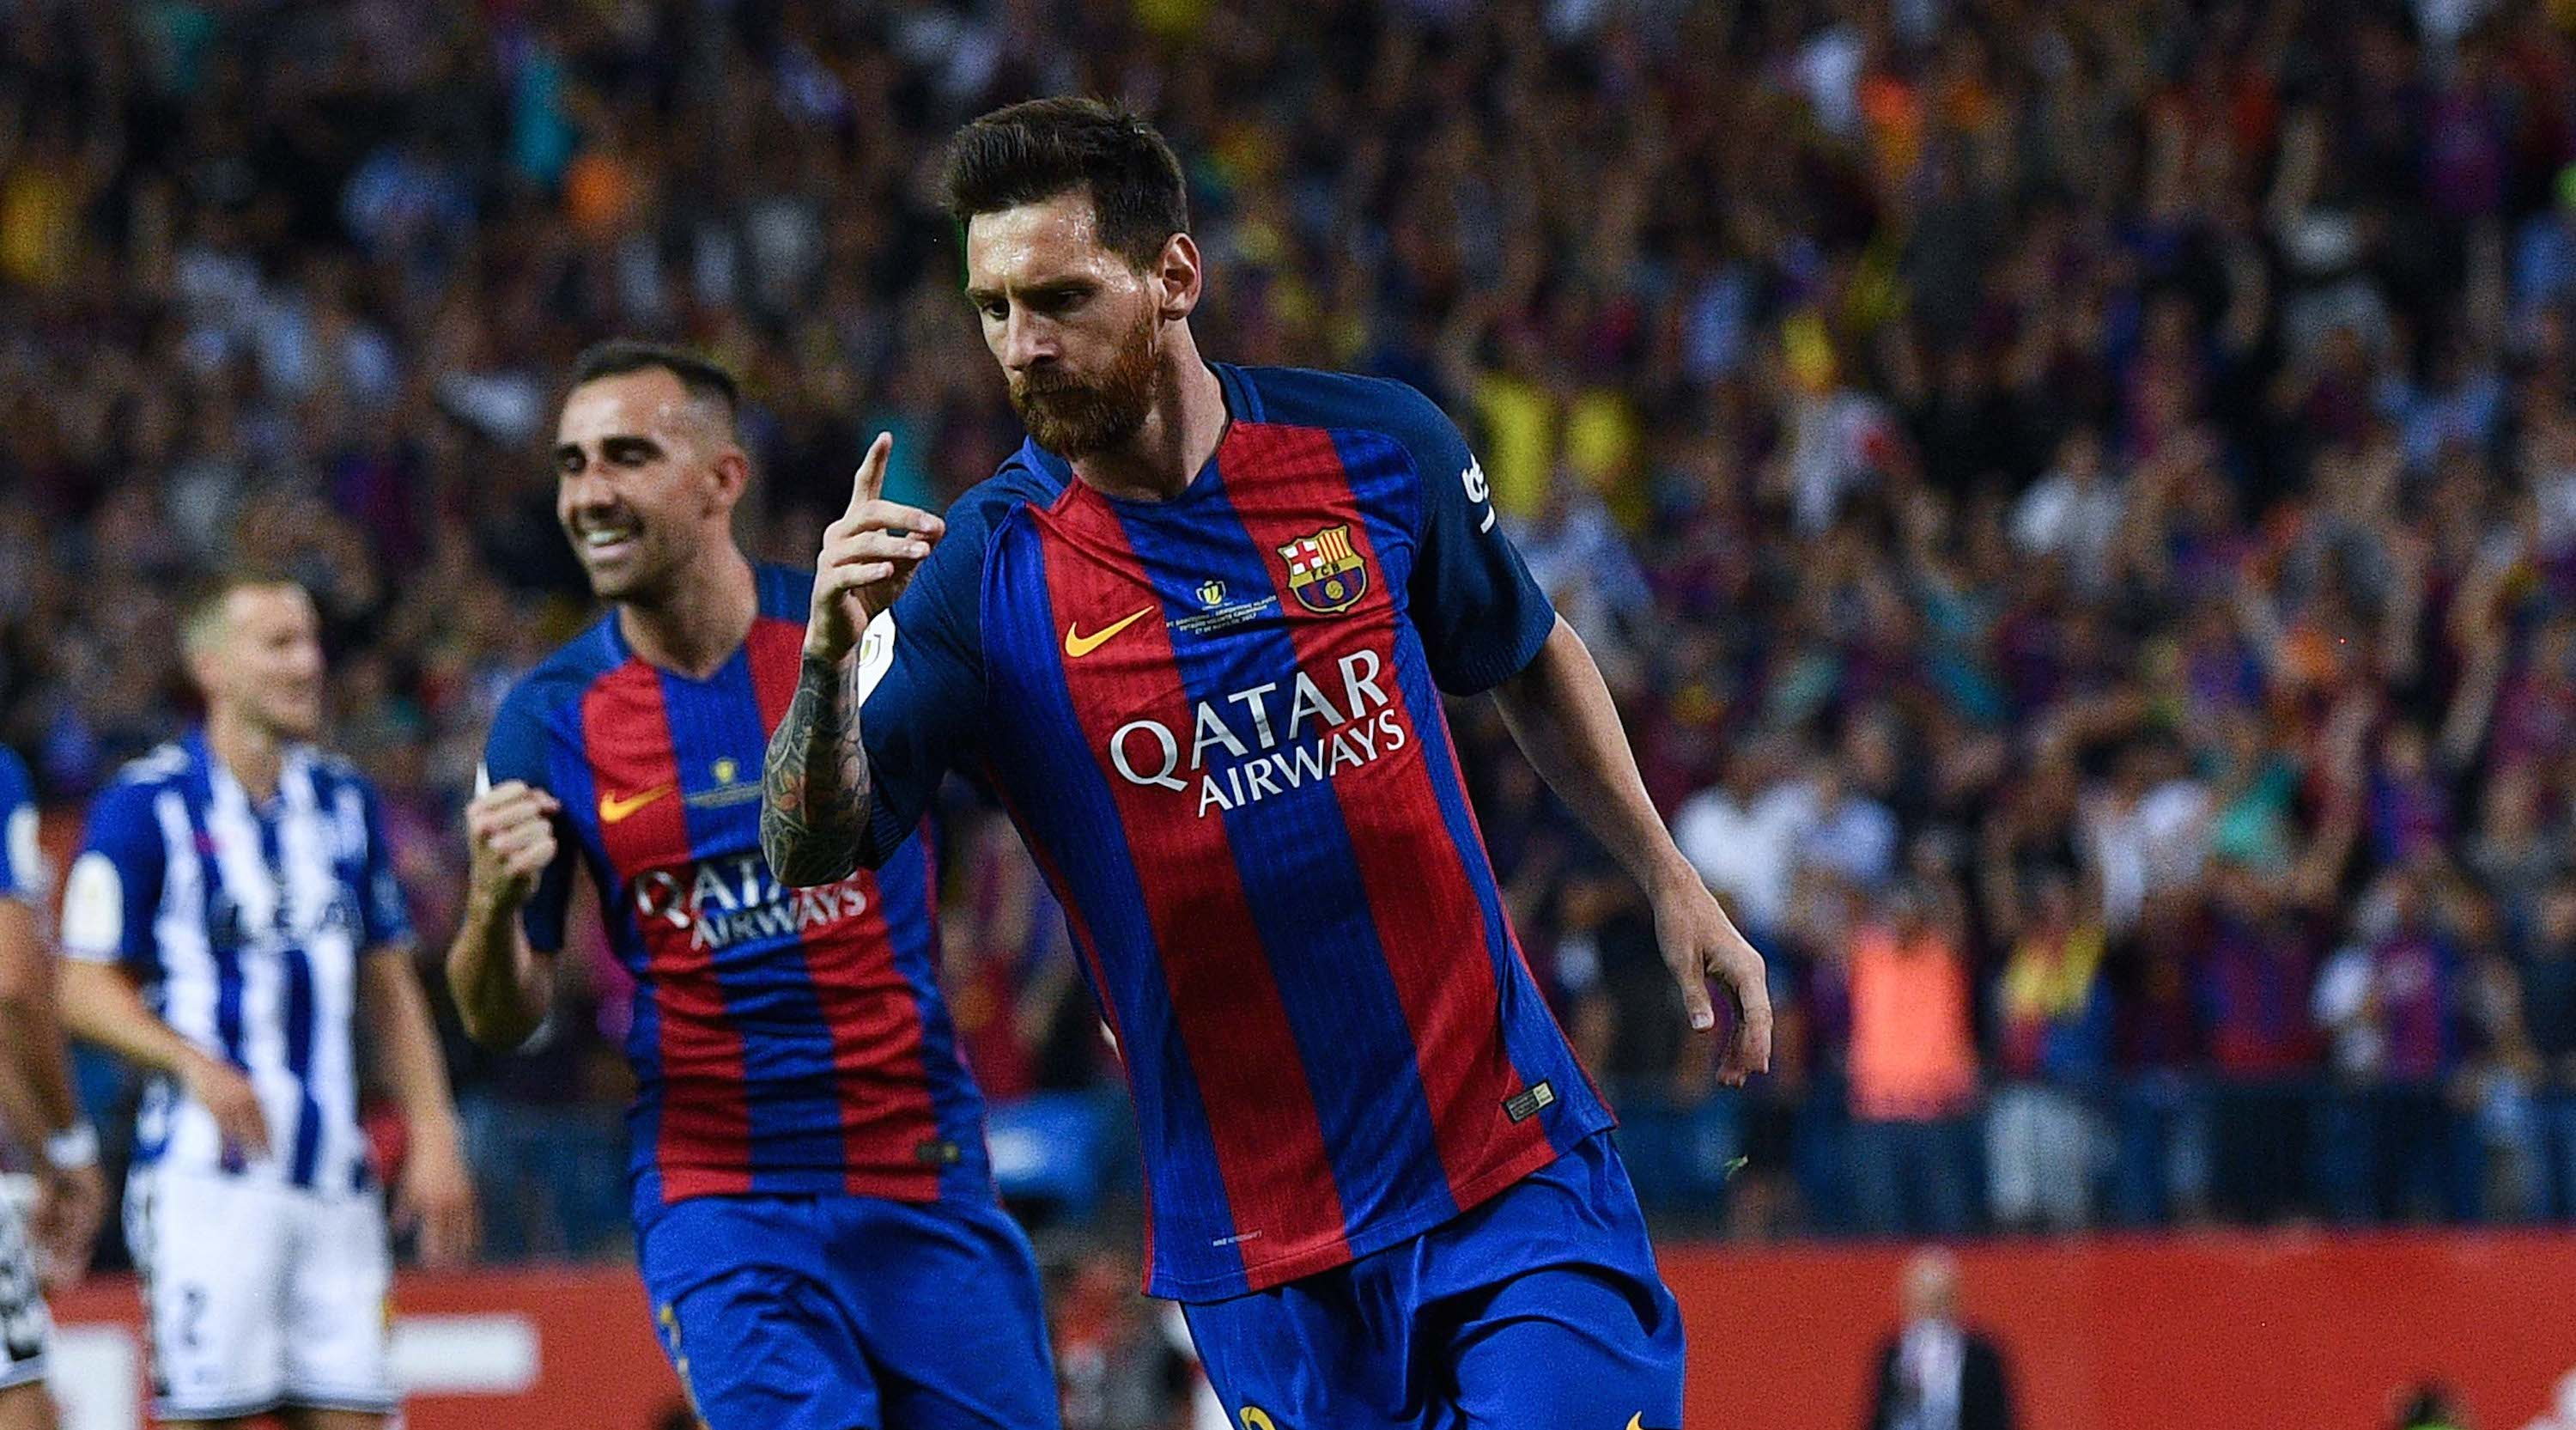 MADRID, SPAIN - MAY 27: Lionel Messi of FC Barcelona celebrates after scoring his team's first goal during the Copa Del Rey Final between FC Barcelona and Deportivo Alaves at Vicente Calderon stadium on May 27, 2017 in Madrid, Spain. (Photo by David Ramos/Getty Images)